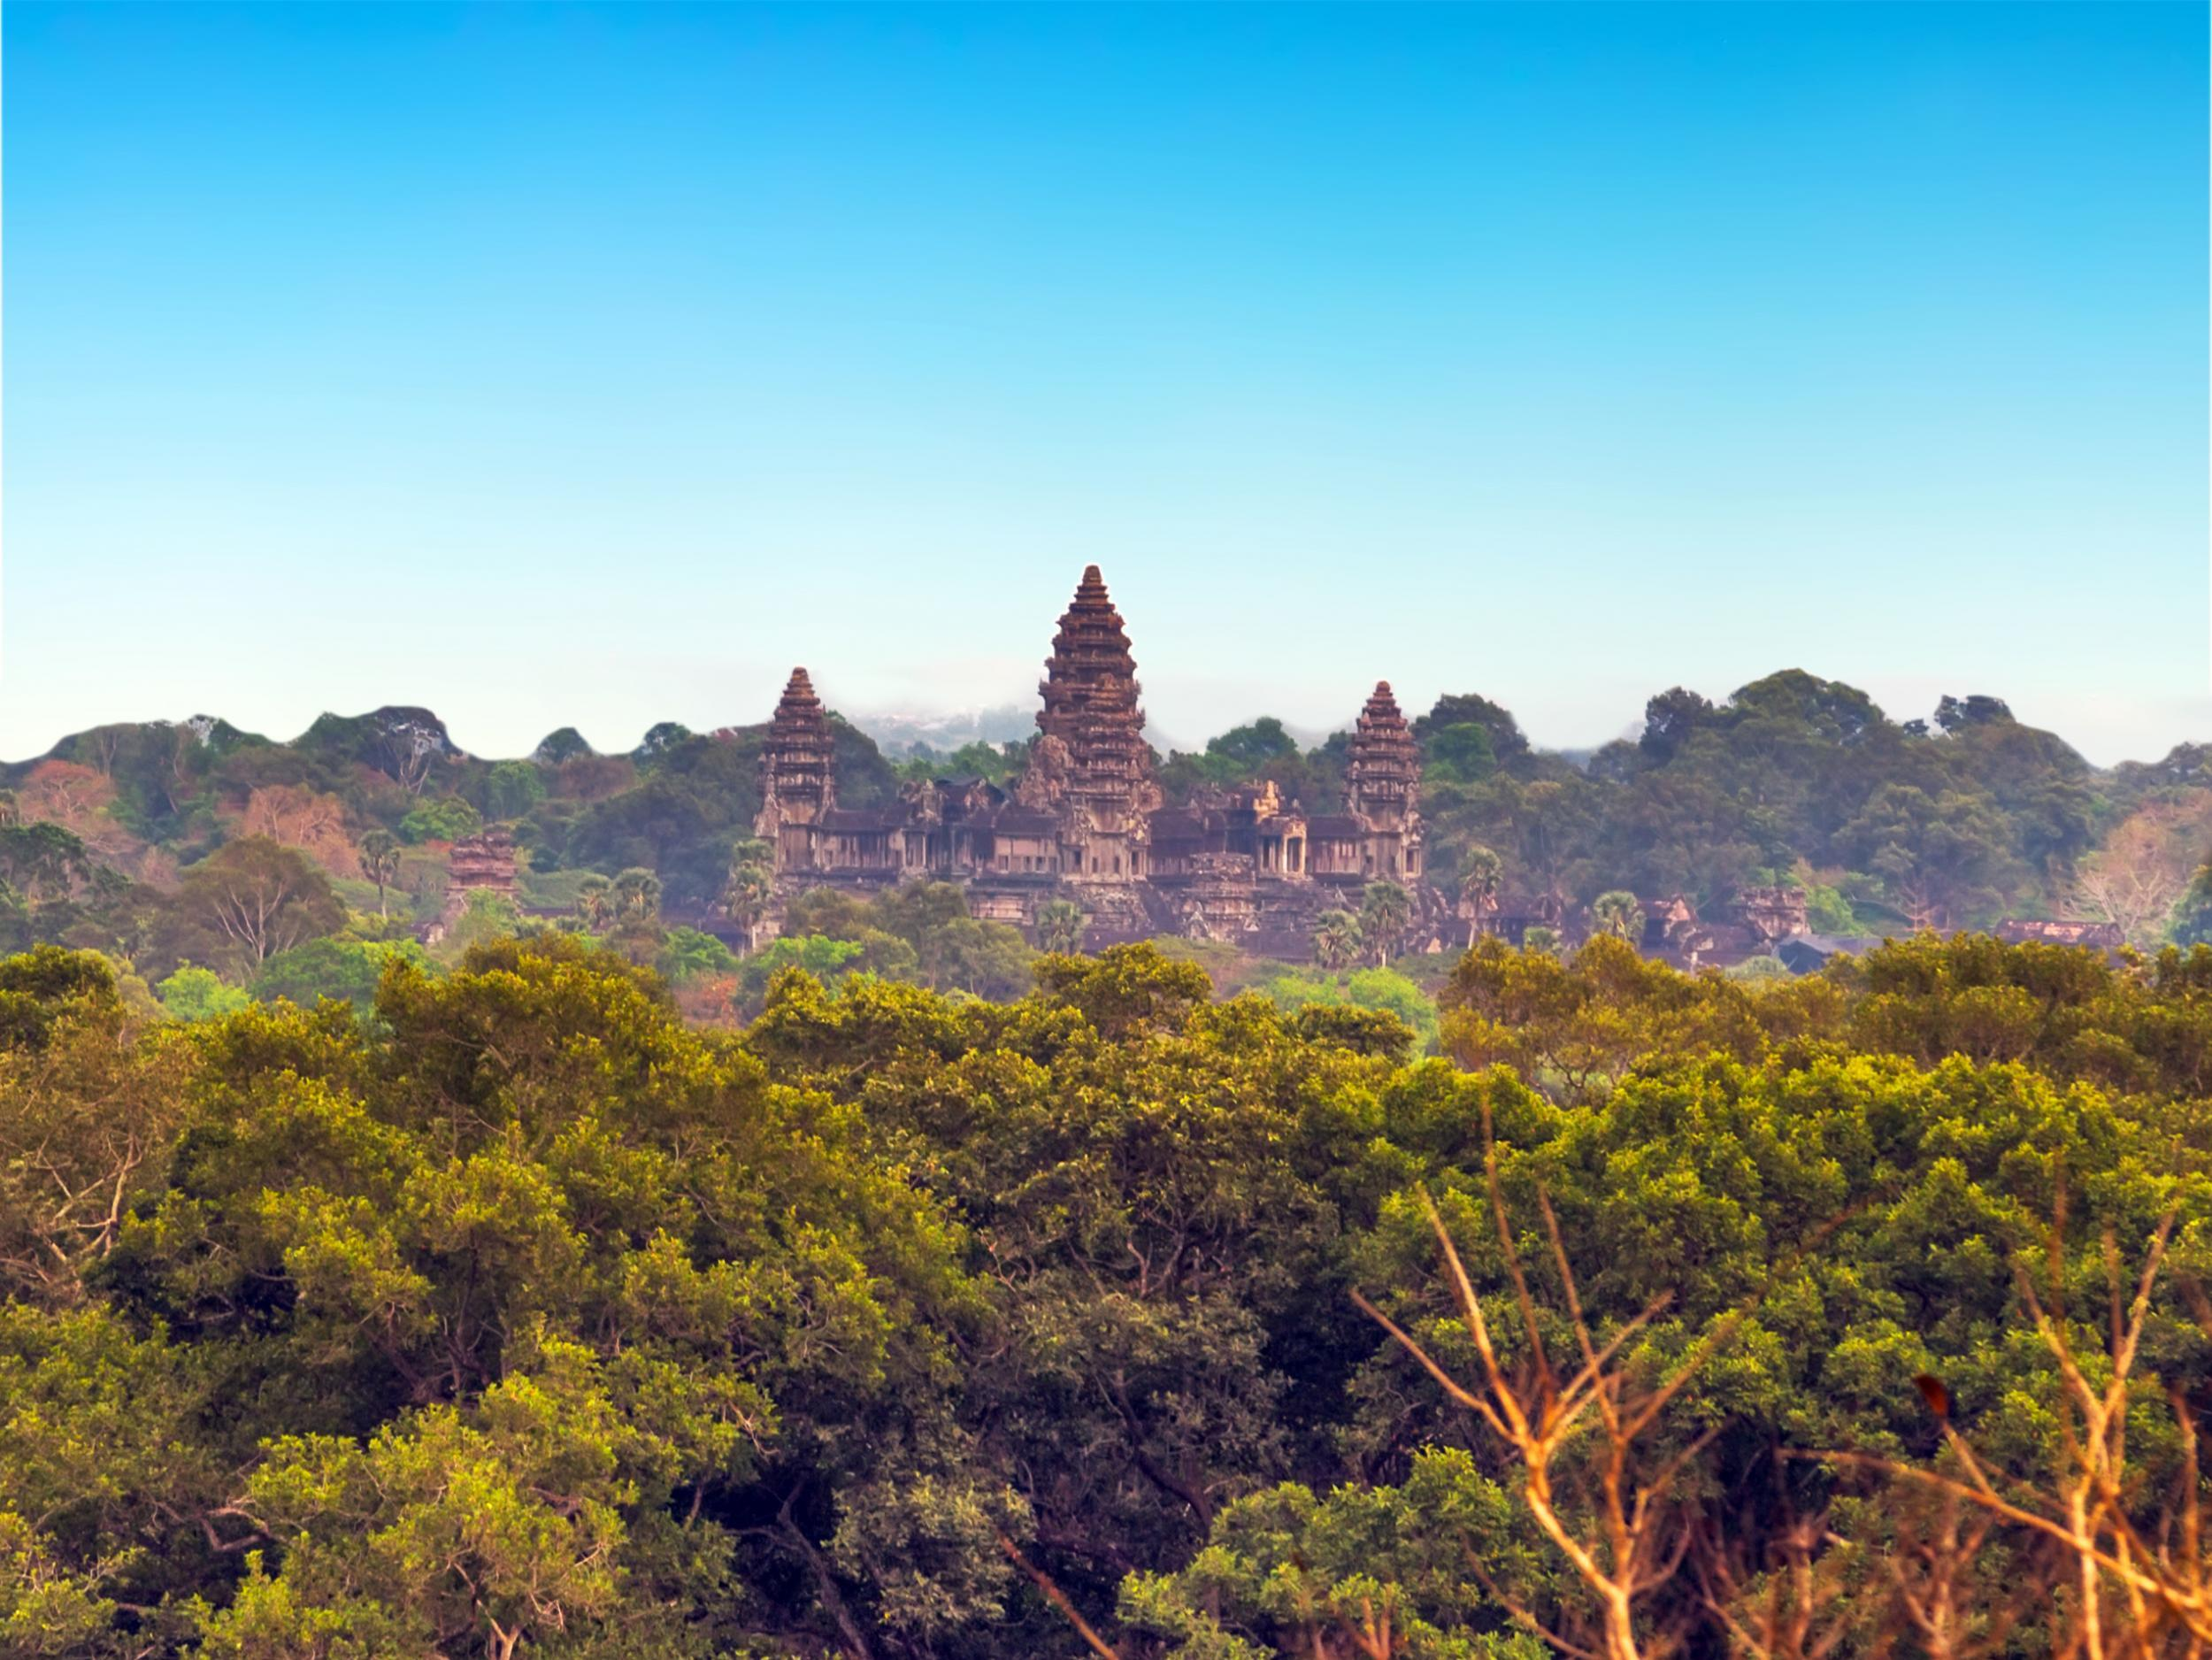 Huge medieval cities unearthed in Cambodia near Angkor Watt